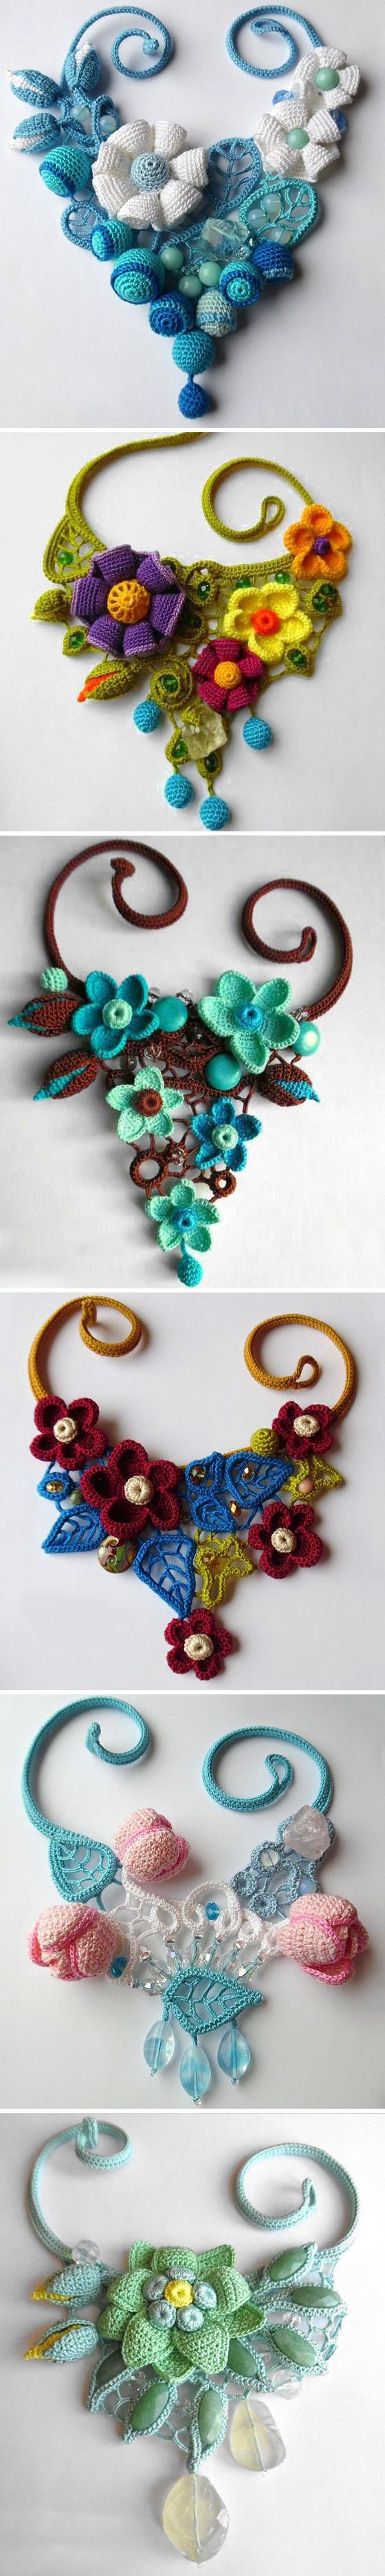 Russian artist Tatiana Potemkina makes wonderful crochet jewelry pieces